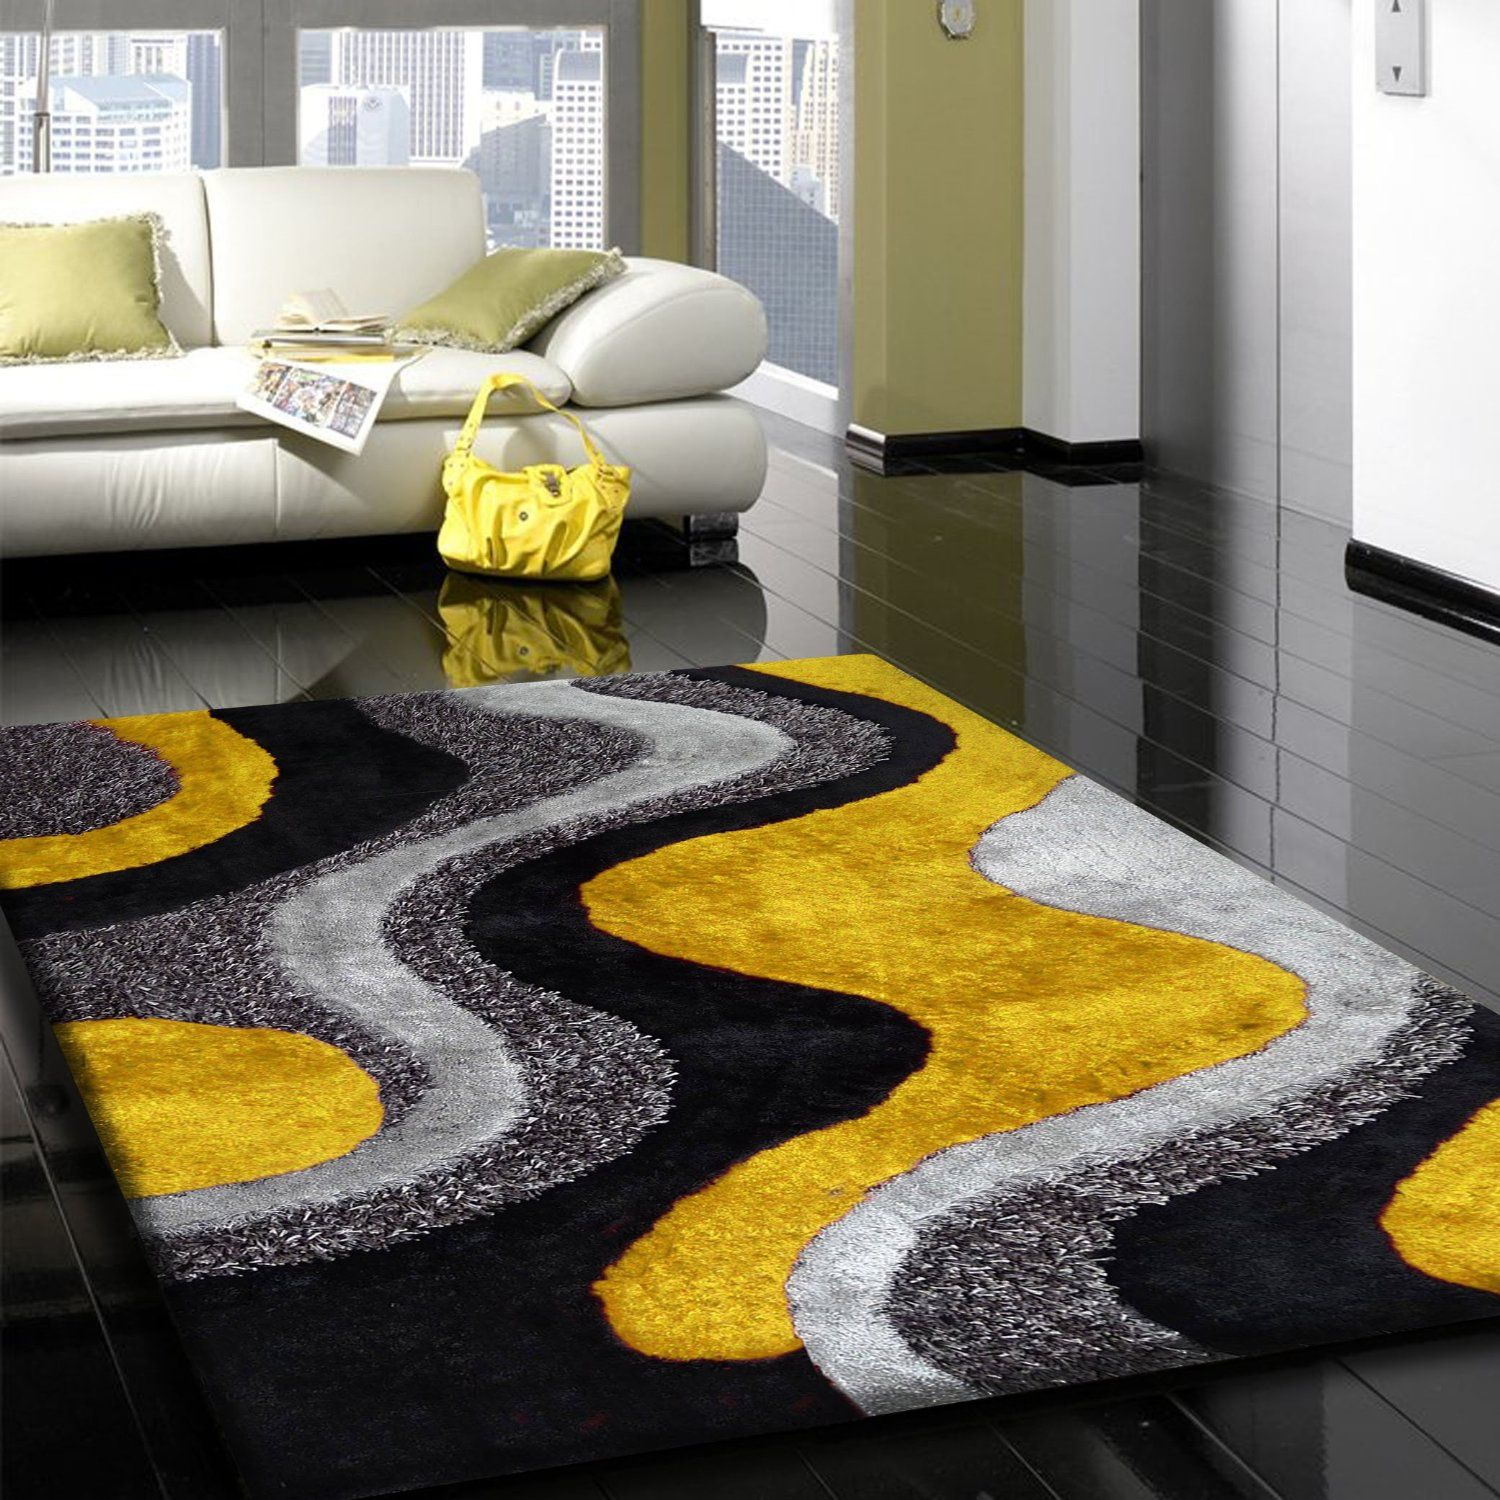 Silk Grey Yellow Carpet Floor Beautiful | bedding in 2018 ...